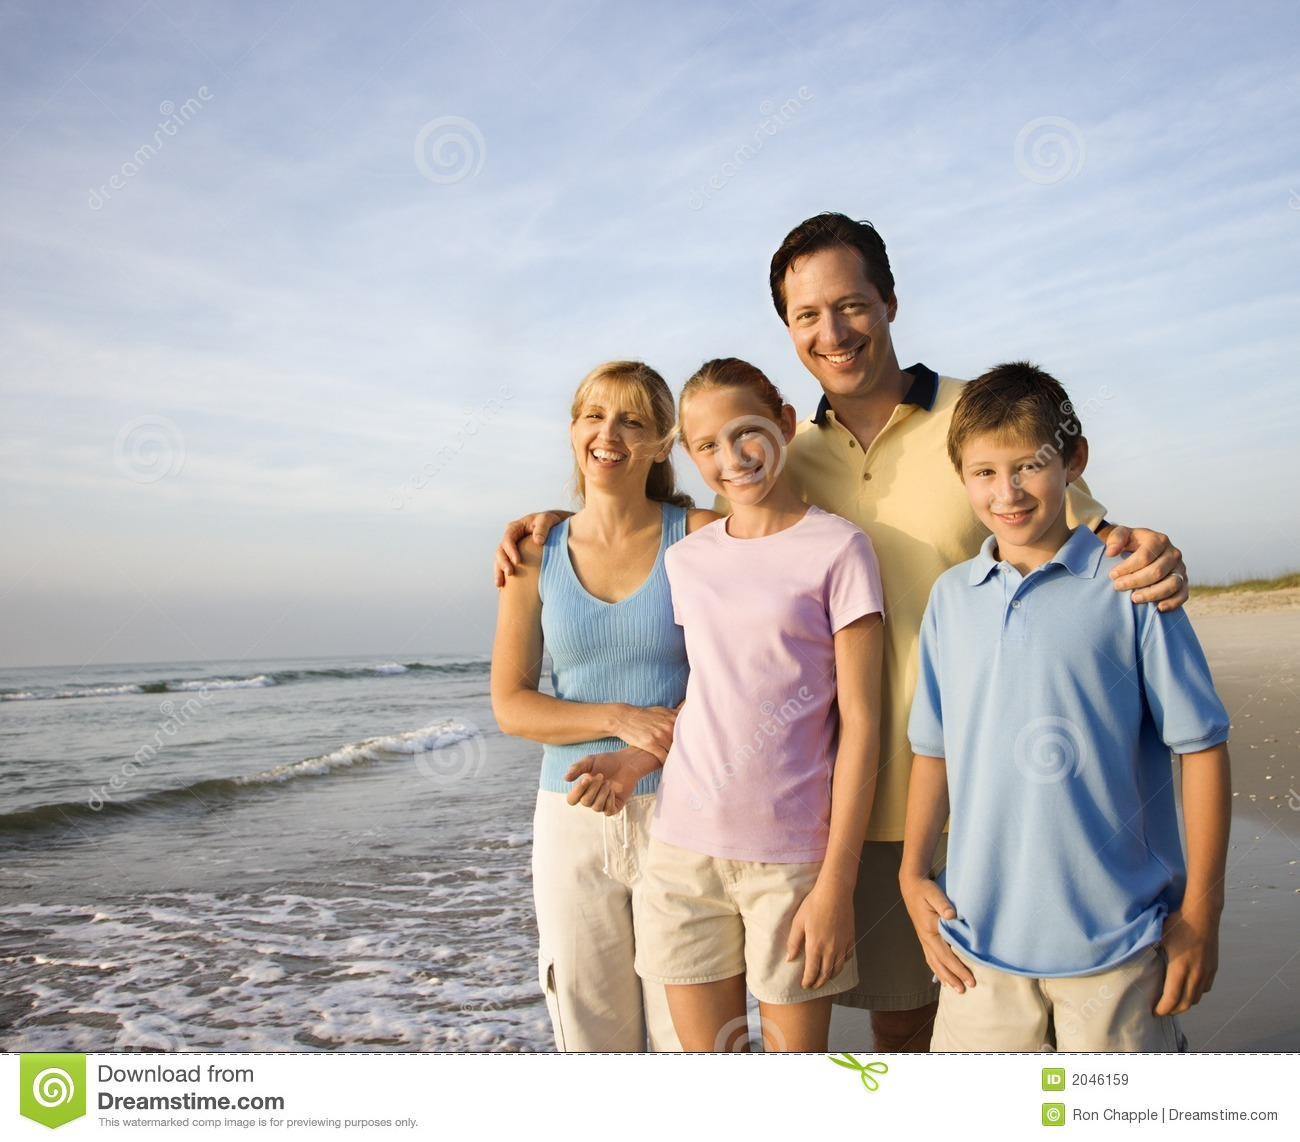 Royalty Free Stock Smiling family on beach